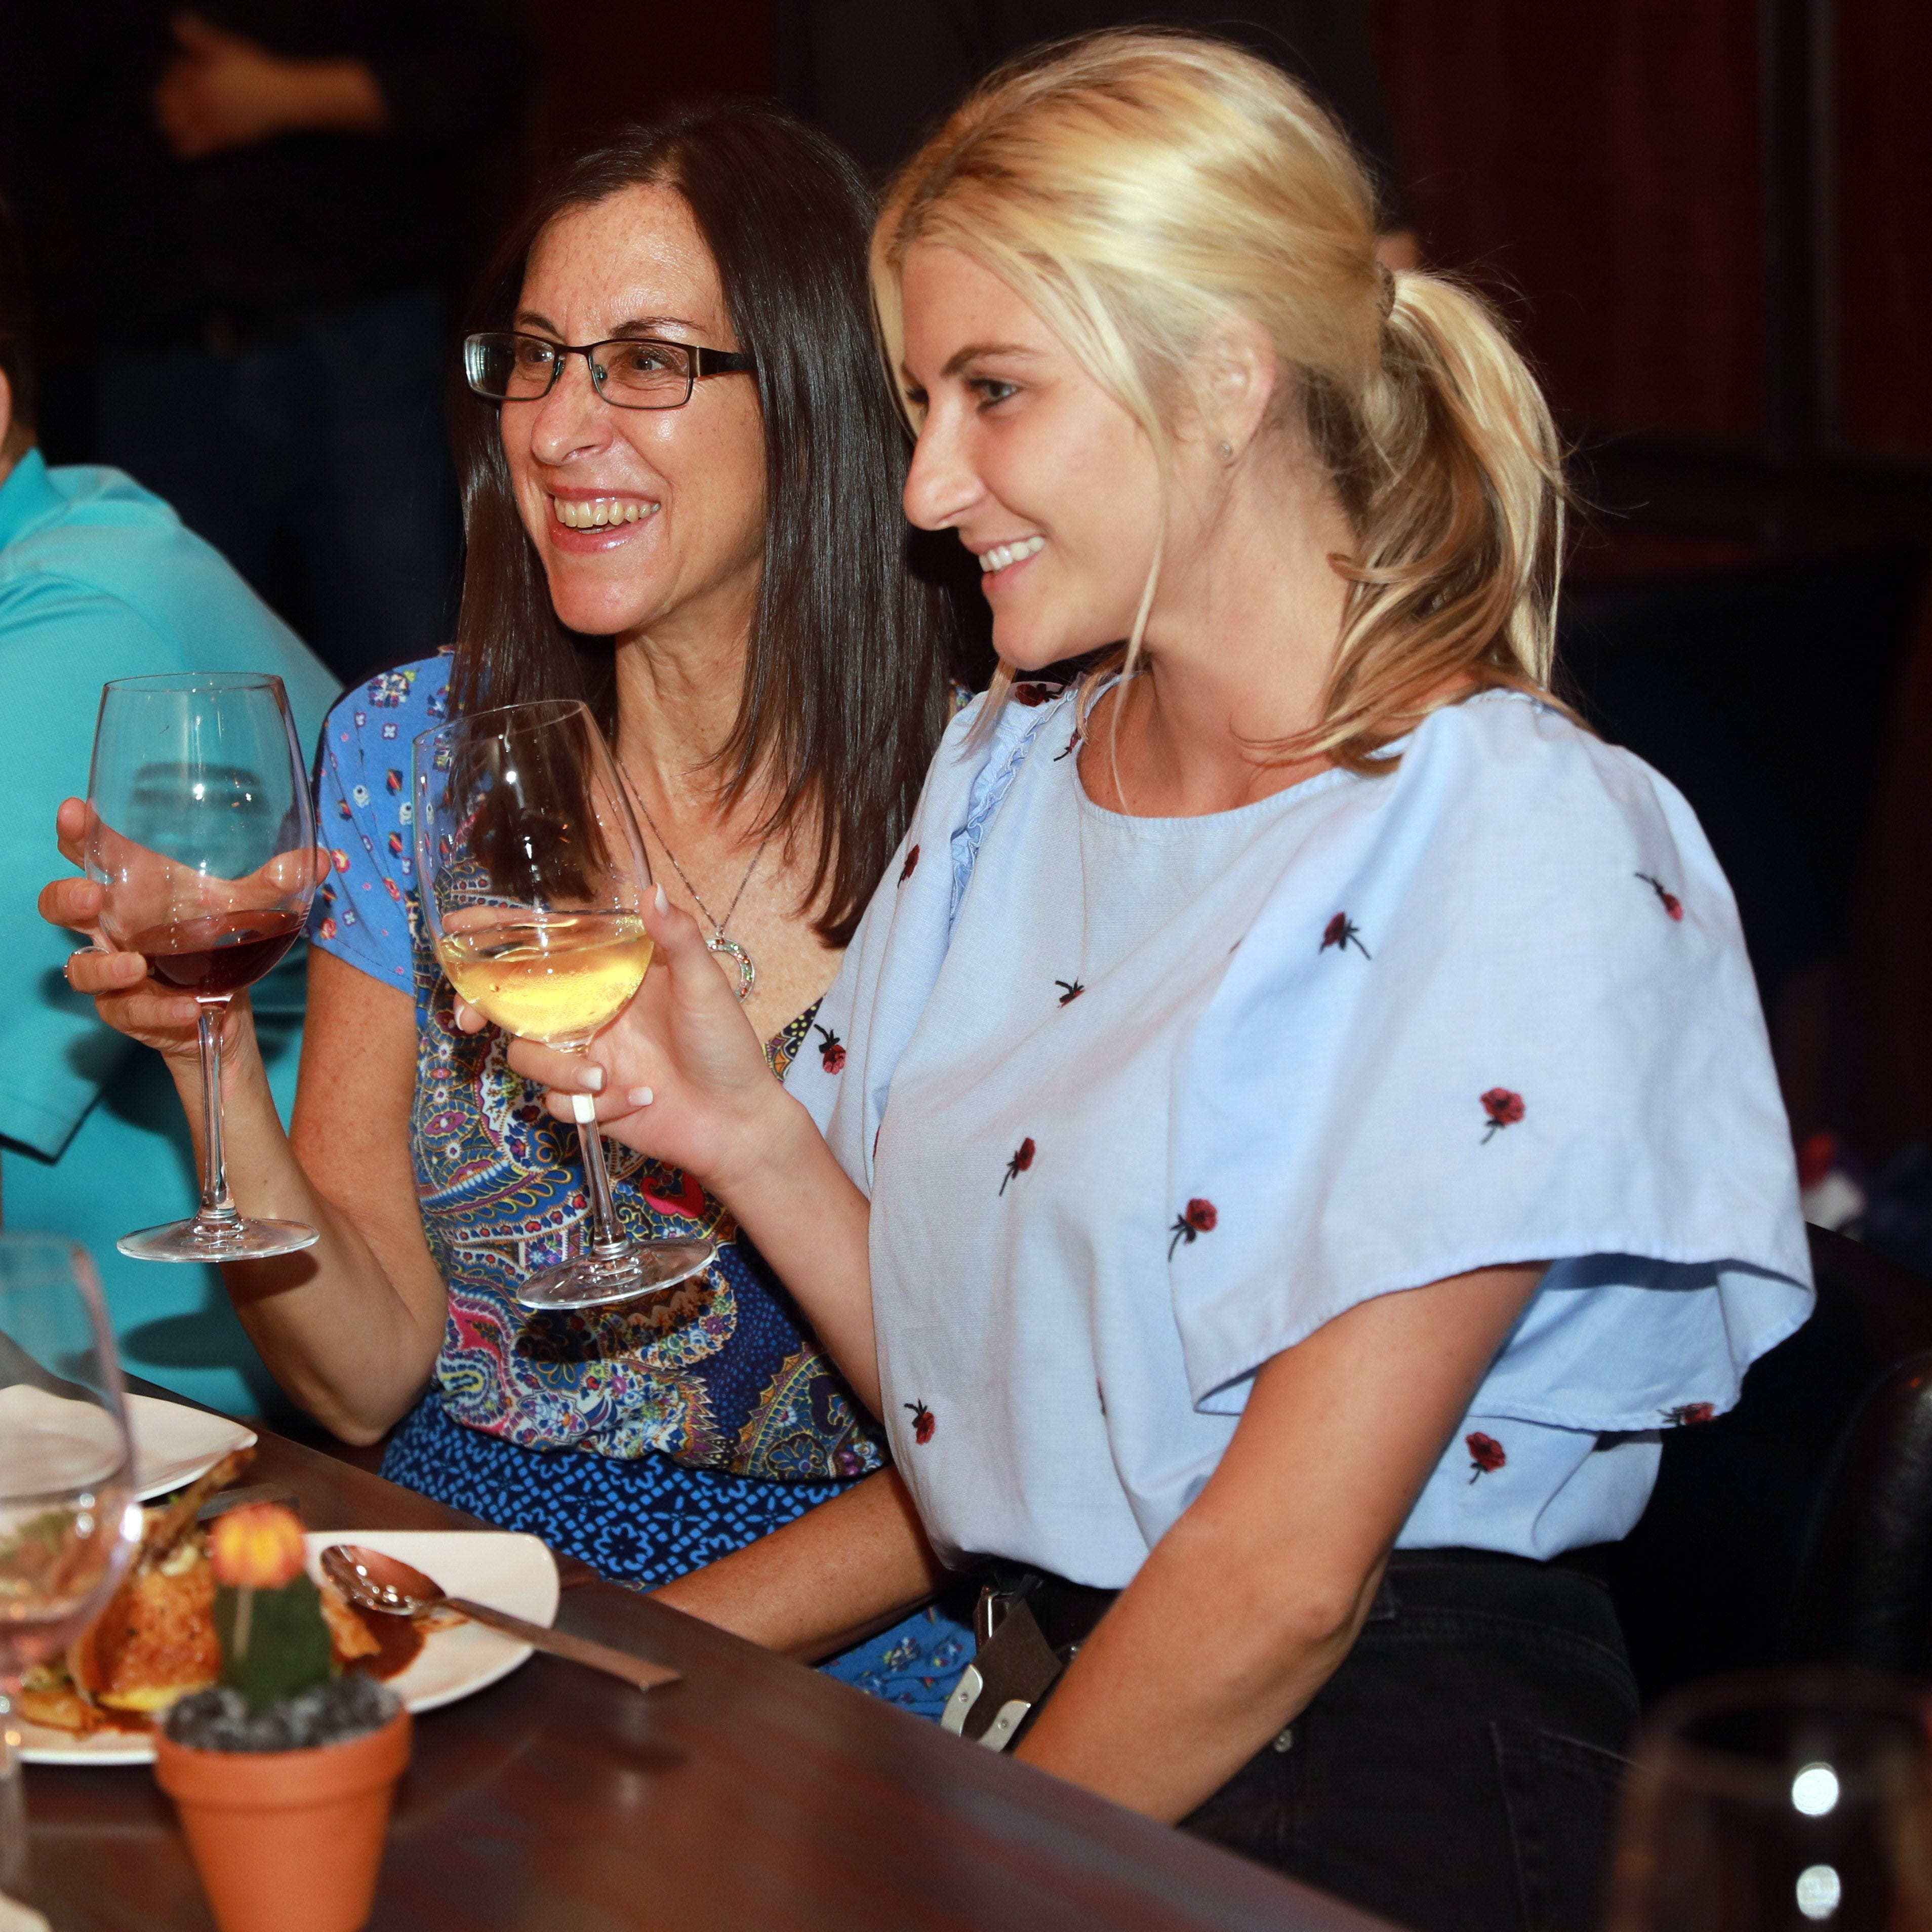 Tickets on sale for April 9 'Dinner with Jeanne' at Tredici Social in Bronxville